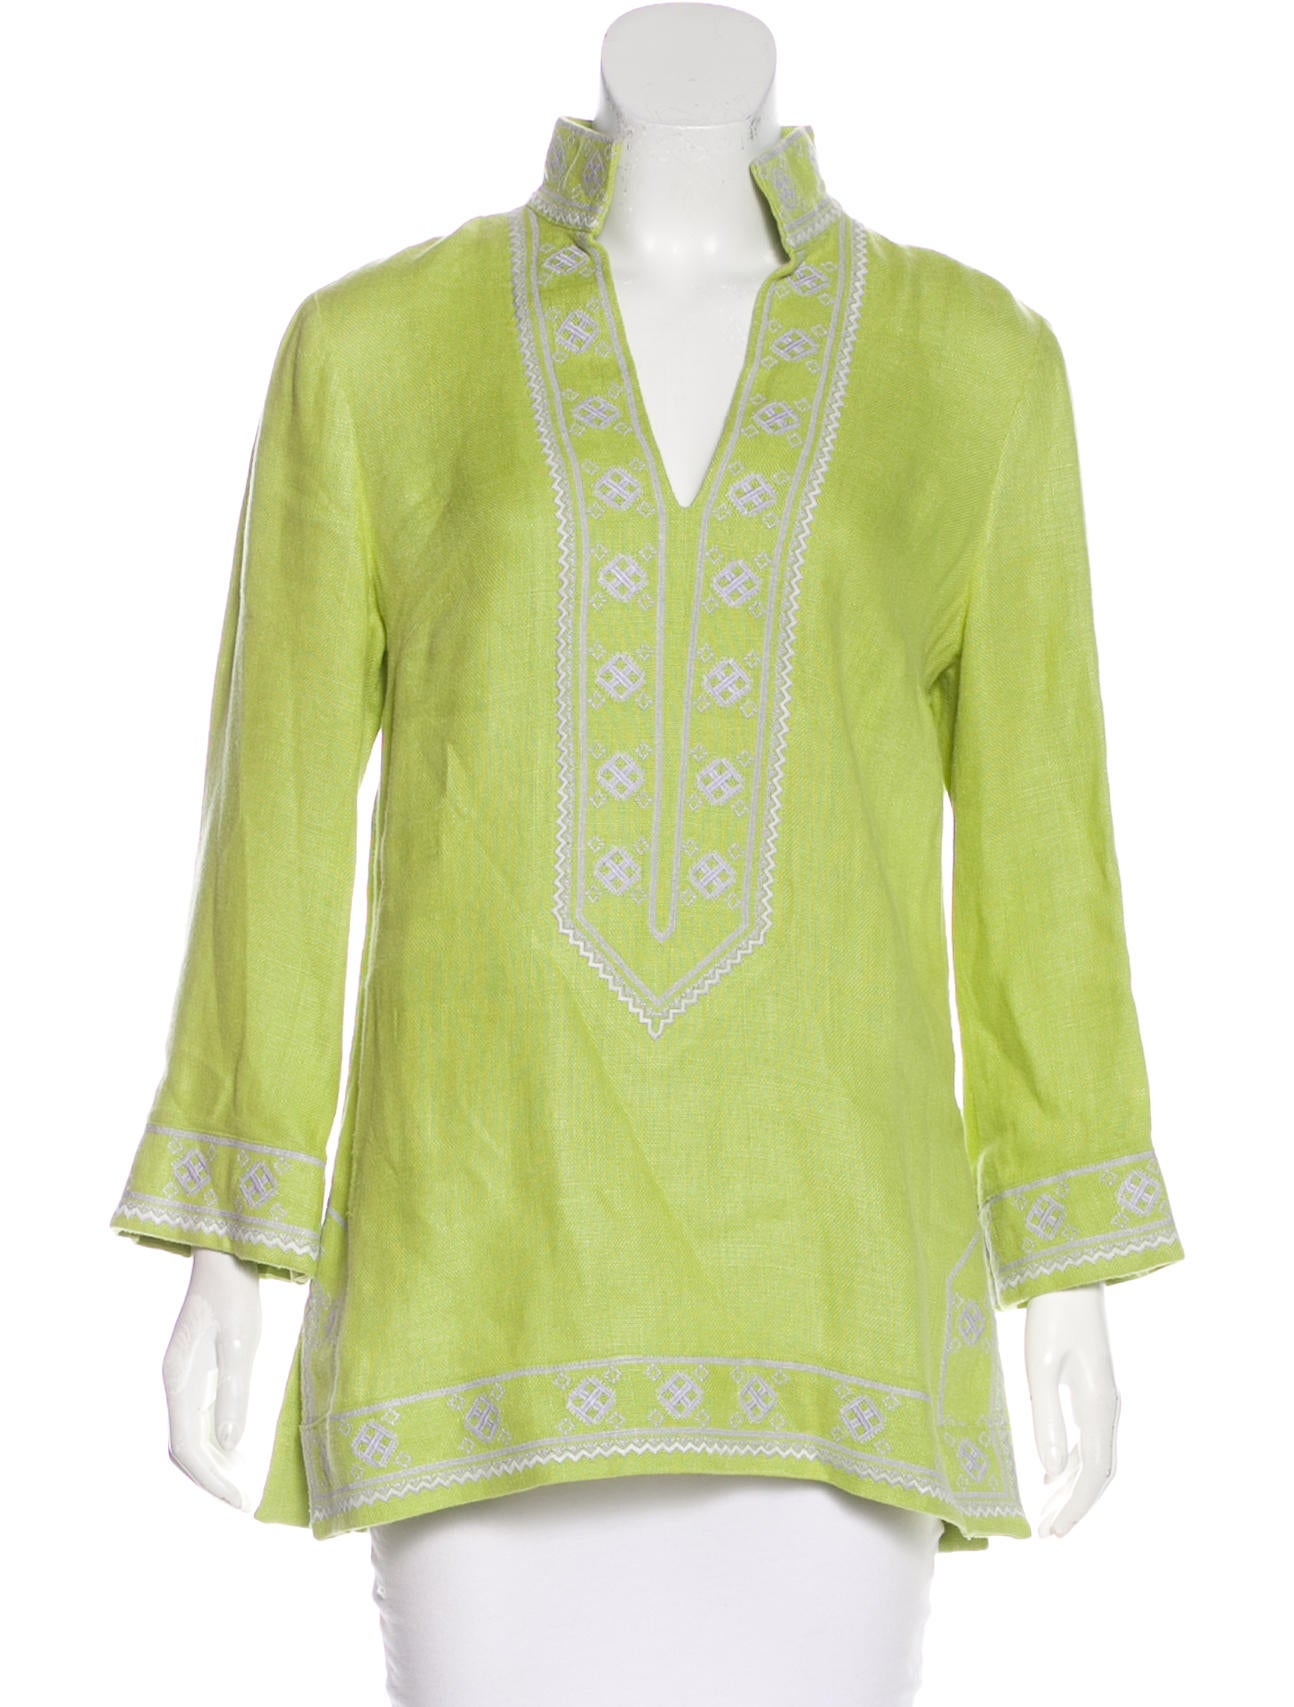 b93138ccb301c2 Tory Burch Embroidered Linen Tunic - Clothing - WTO127729